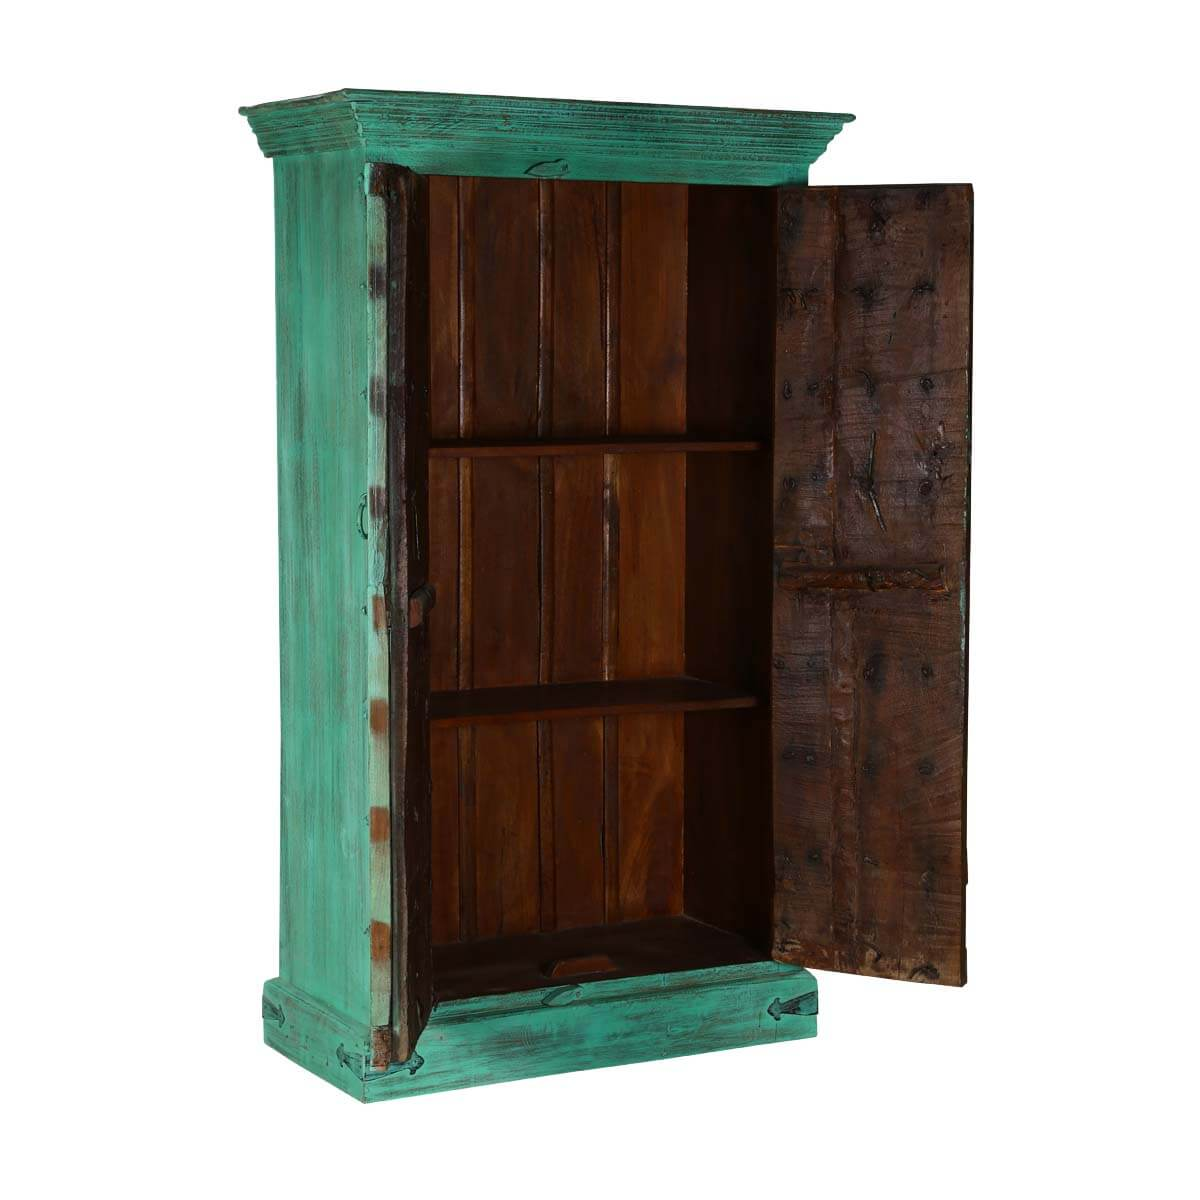 Turquoise Trail Rustic Reclaimed Wood Handmade Armoire